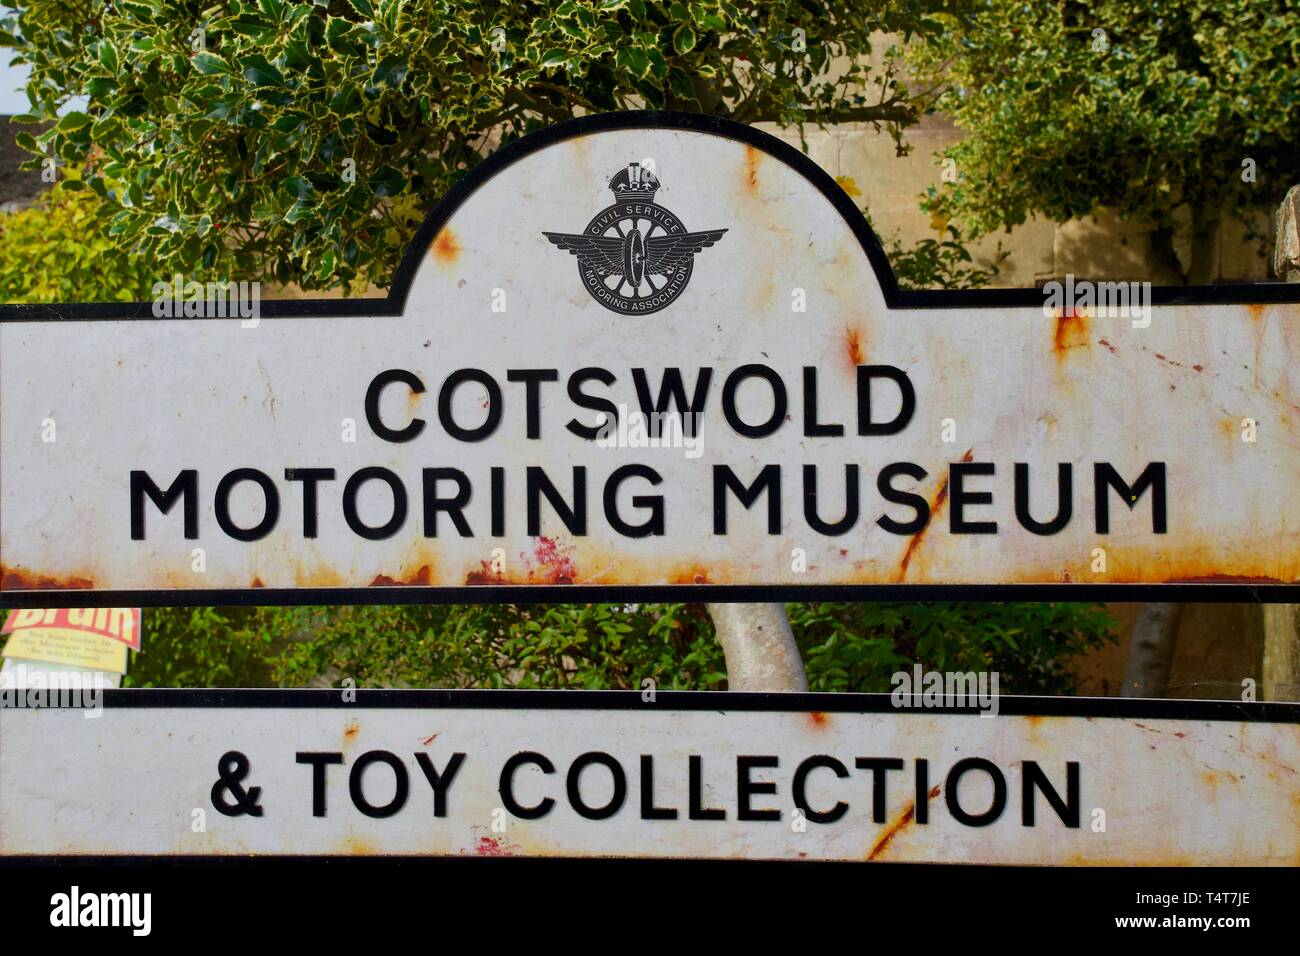 Cotswolds Motoring Museum Stock Photos & Cotswolds Motoring Museum